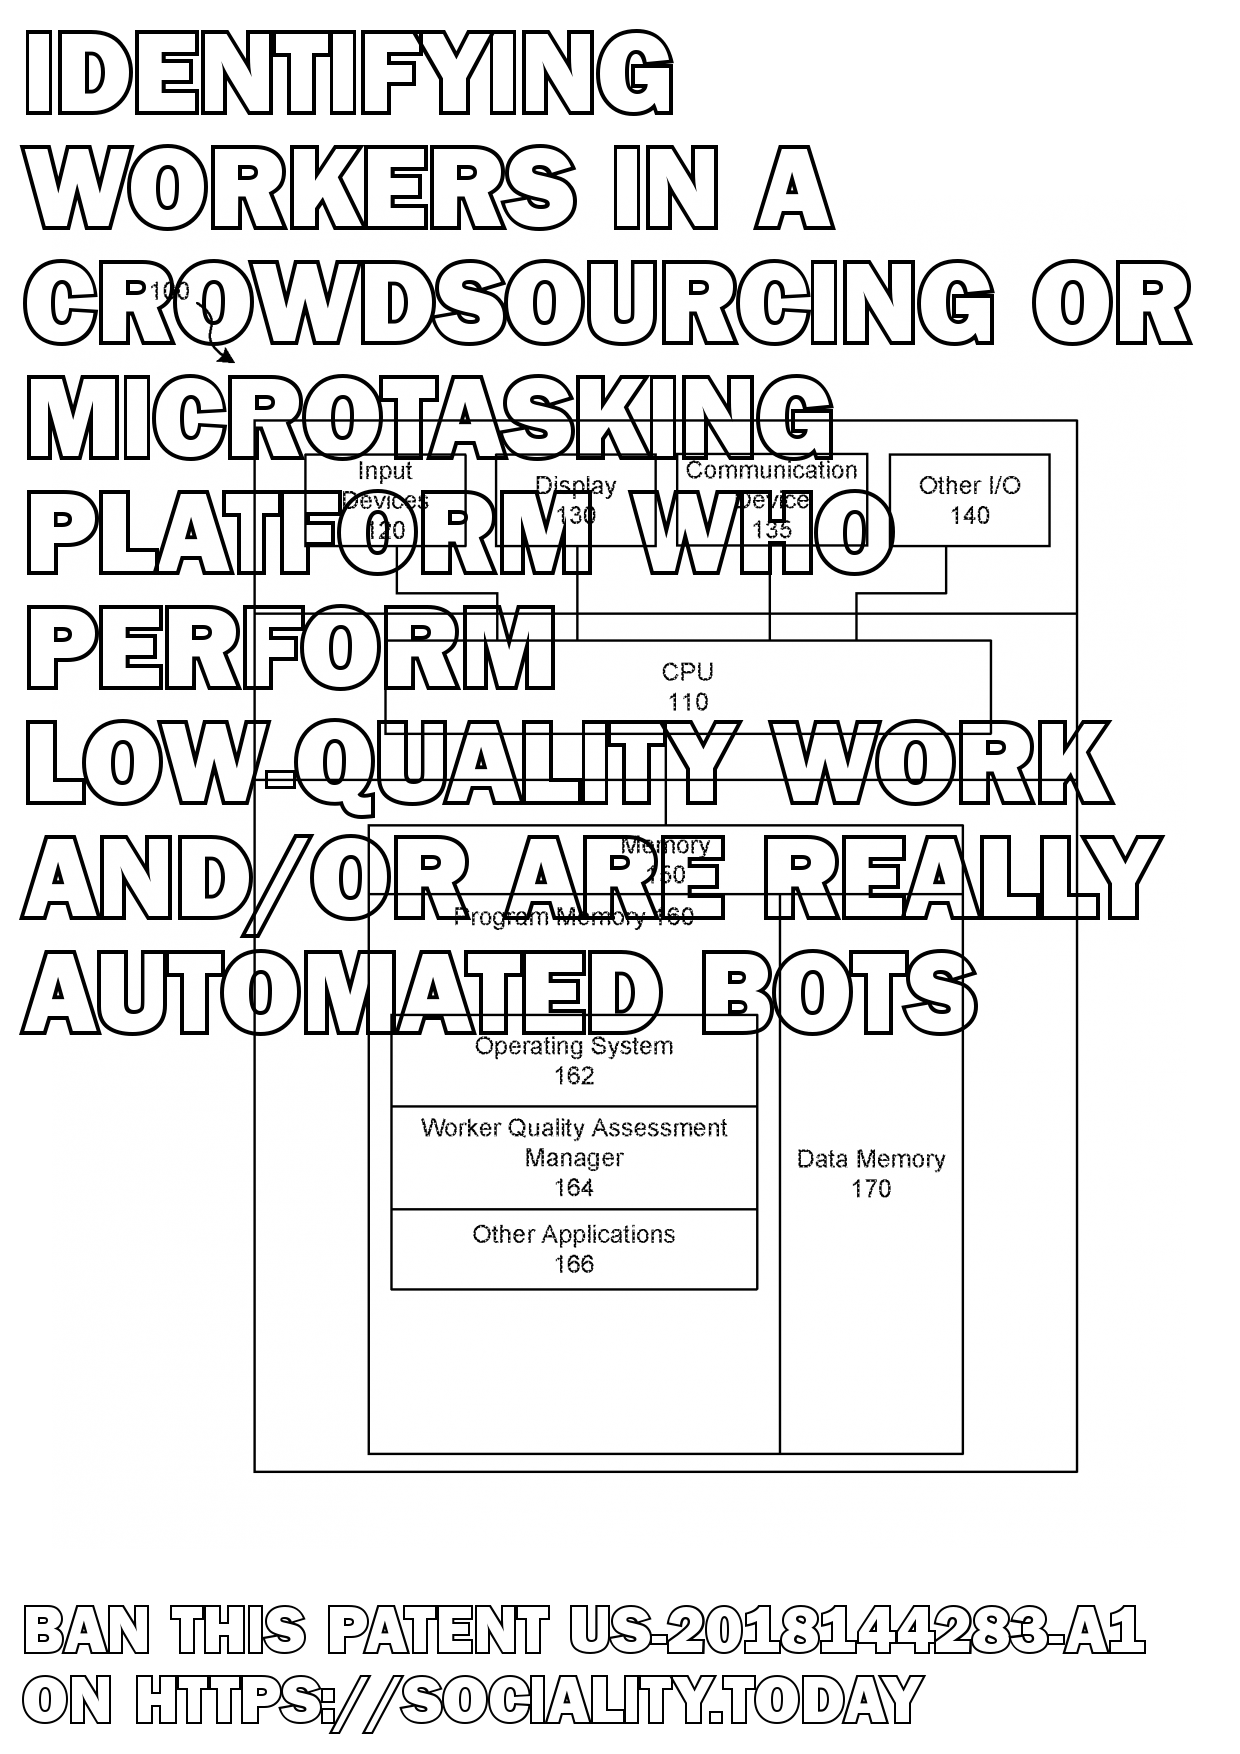 Identifying workers in a crowdsourcing or microtasking platform who perform low-quality work and/or are really automated bots  - US-2018144283-A1